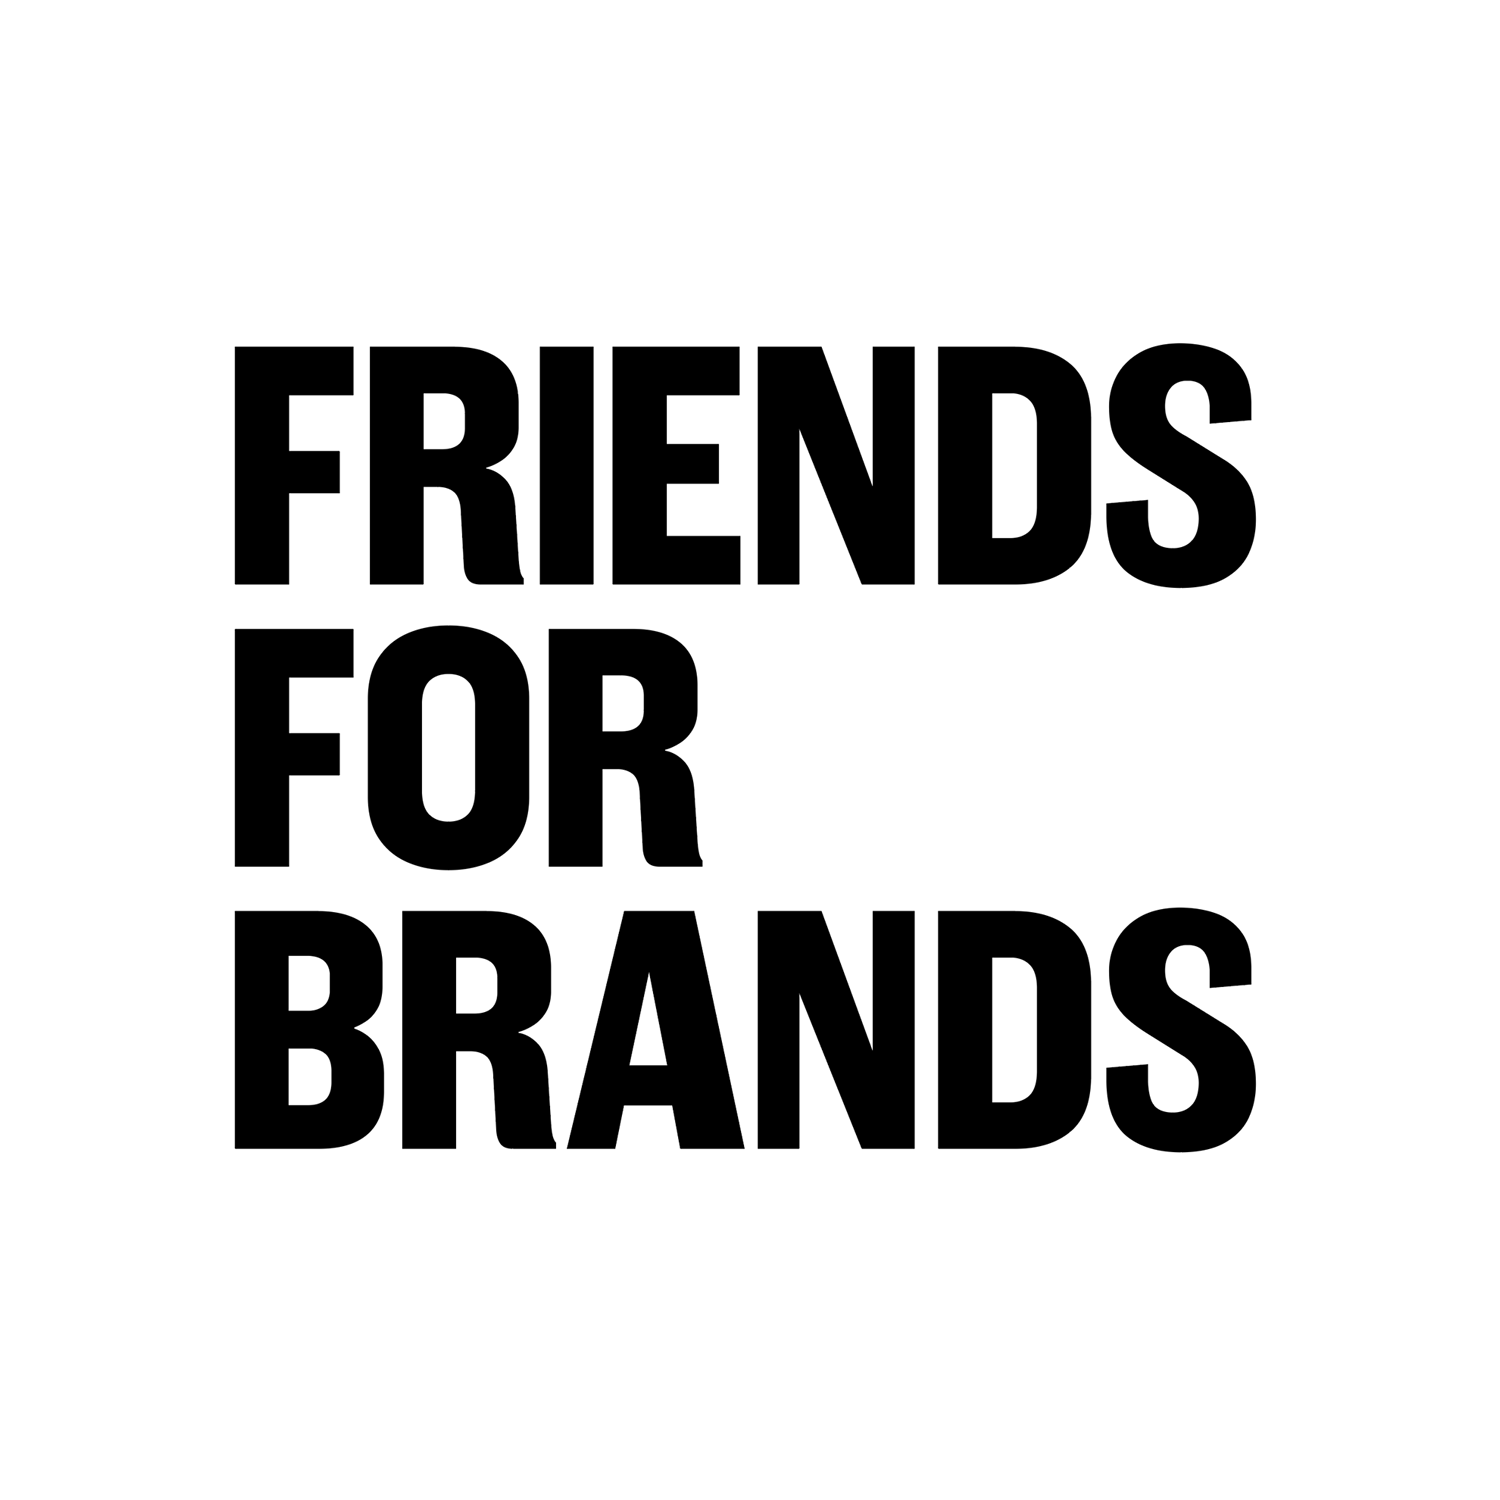 Strategic Creative Met Copywriting Skills bij Friends for Brands